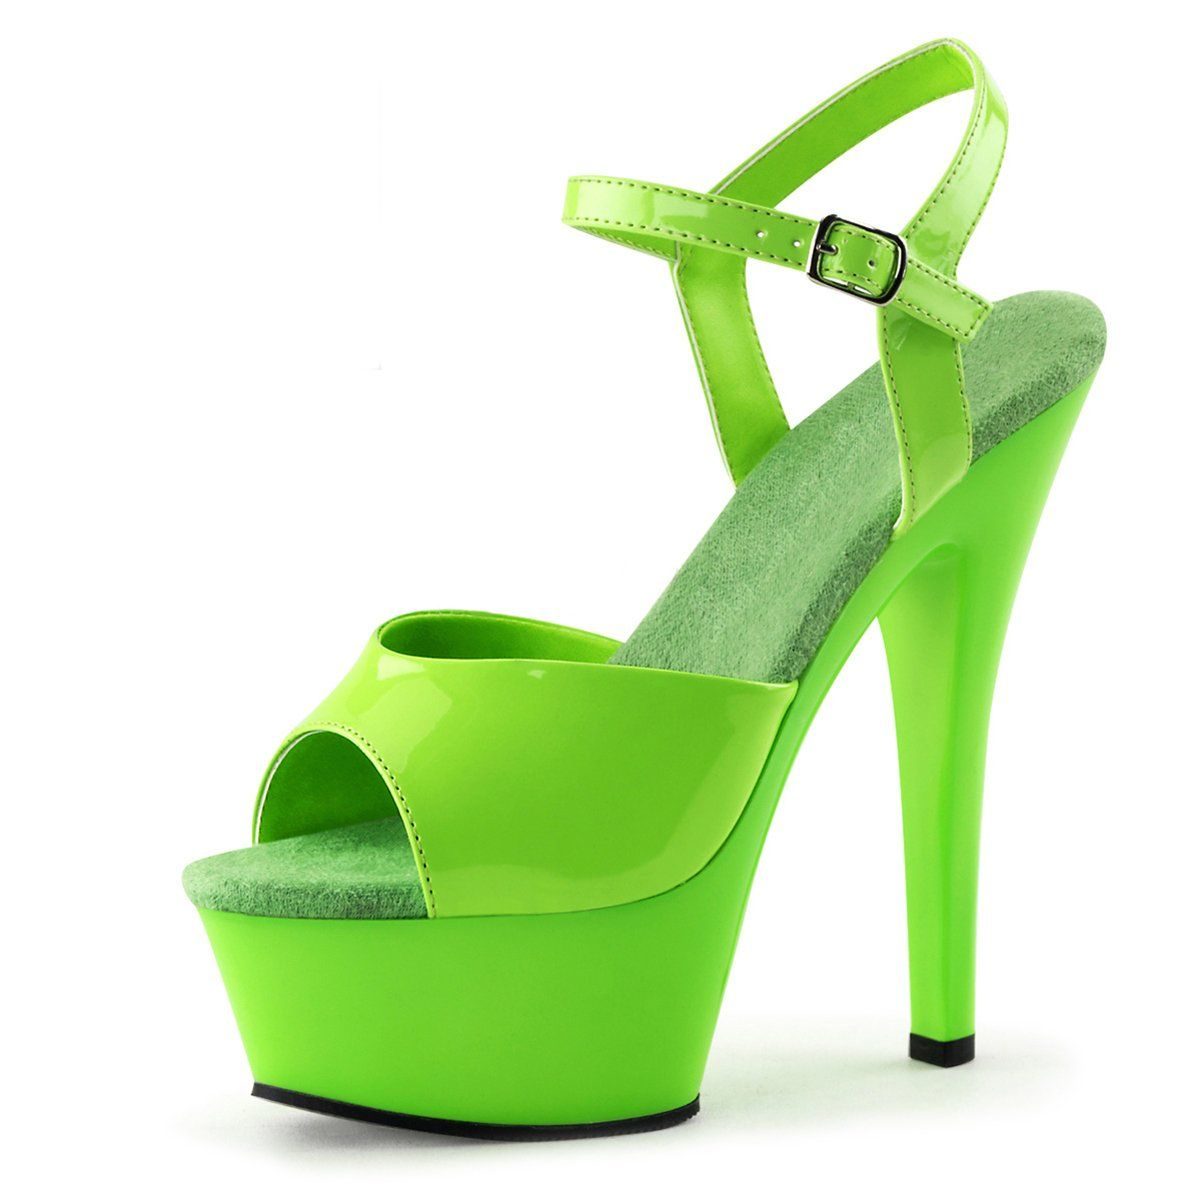 e5b0212eaef067 Womens Neon Green Heels UV Reactive Sandals Ankle Strap Platforms 6 Inch  Shoes Size  12. Womens sizing platform sandals. 6 Inch heel - 1 3 4 Inch  platform.